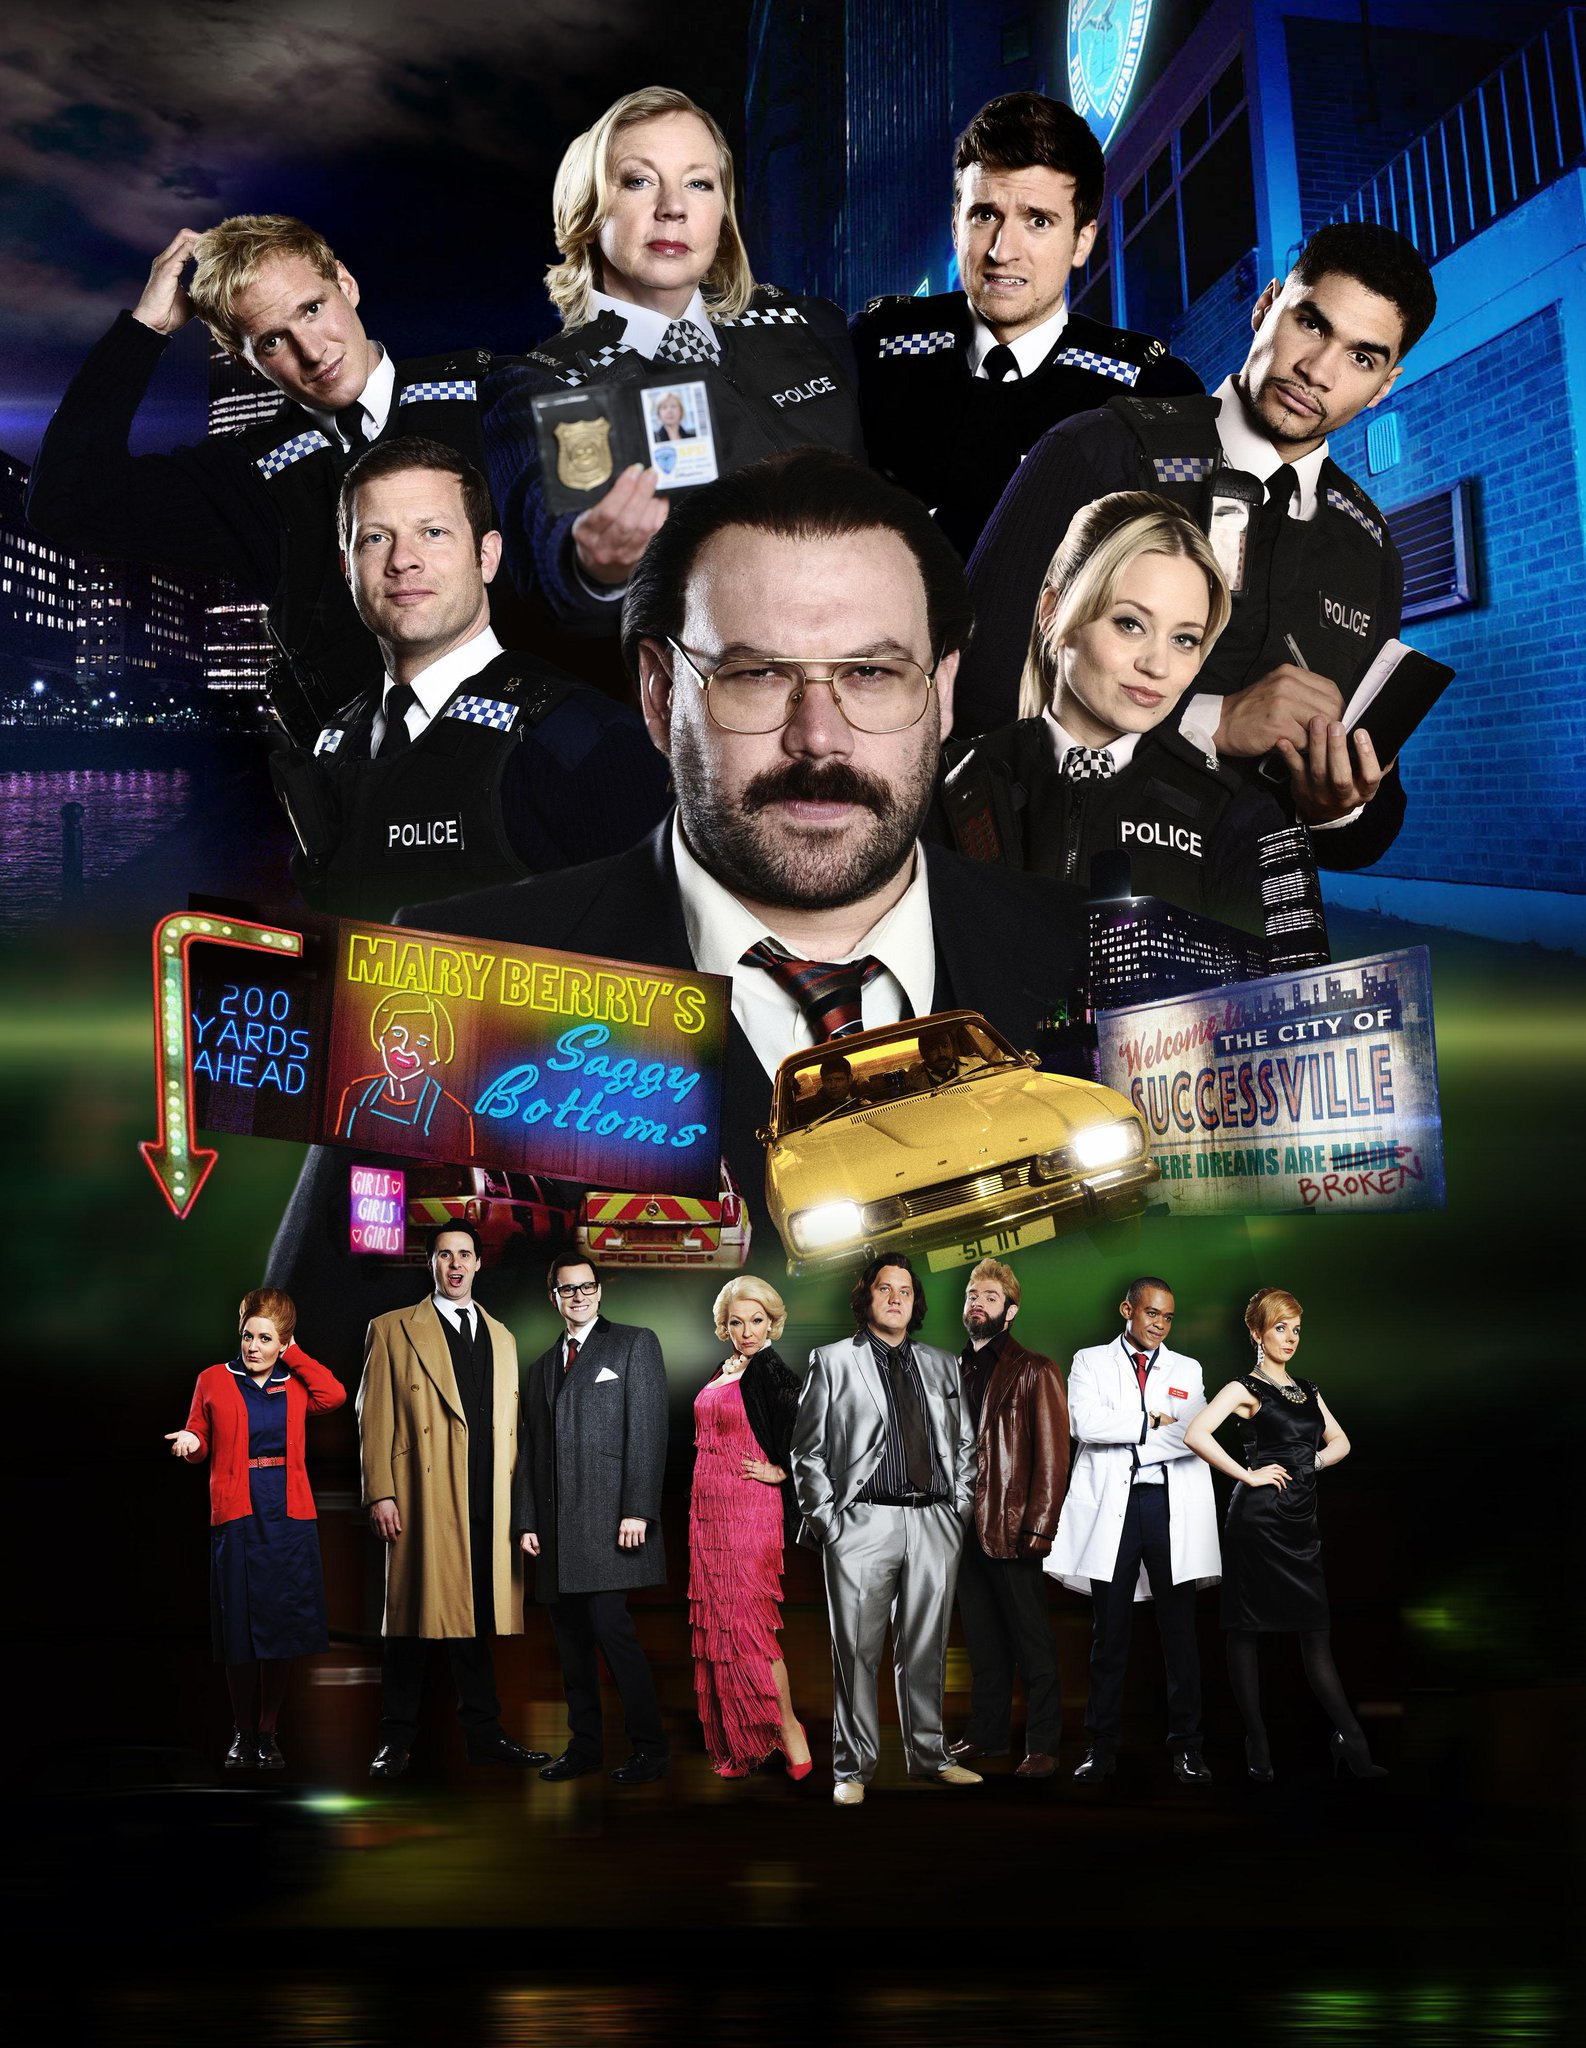 RT @TobyonTV: The riotous #MurderinSuccessville starts 6th May and my interviews with @BigTomD & @KimberlyKWyatt will air presently http://…